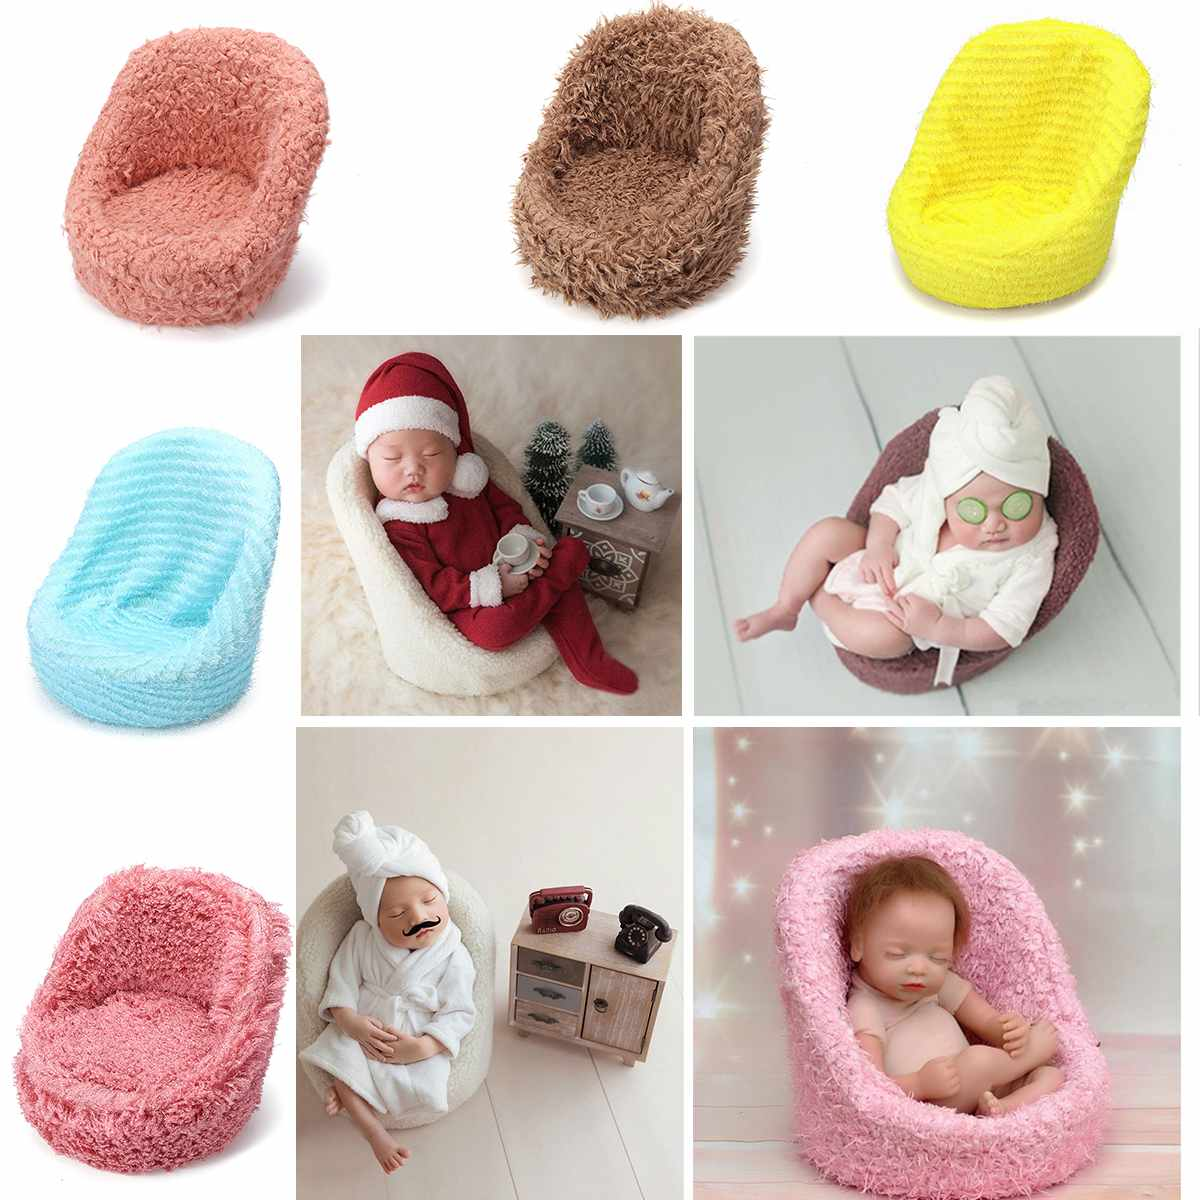 Children's Studio Photography Props Photographing Newborn Chair Sofa Decor Mini Baby Sitting Chair Infant Birth Shooting Tool